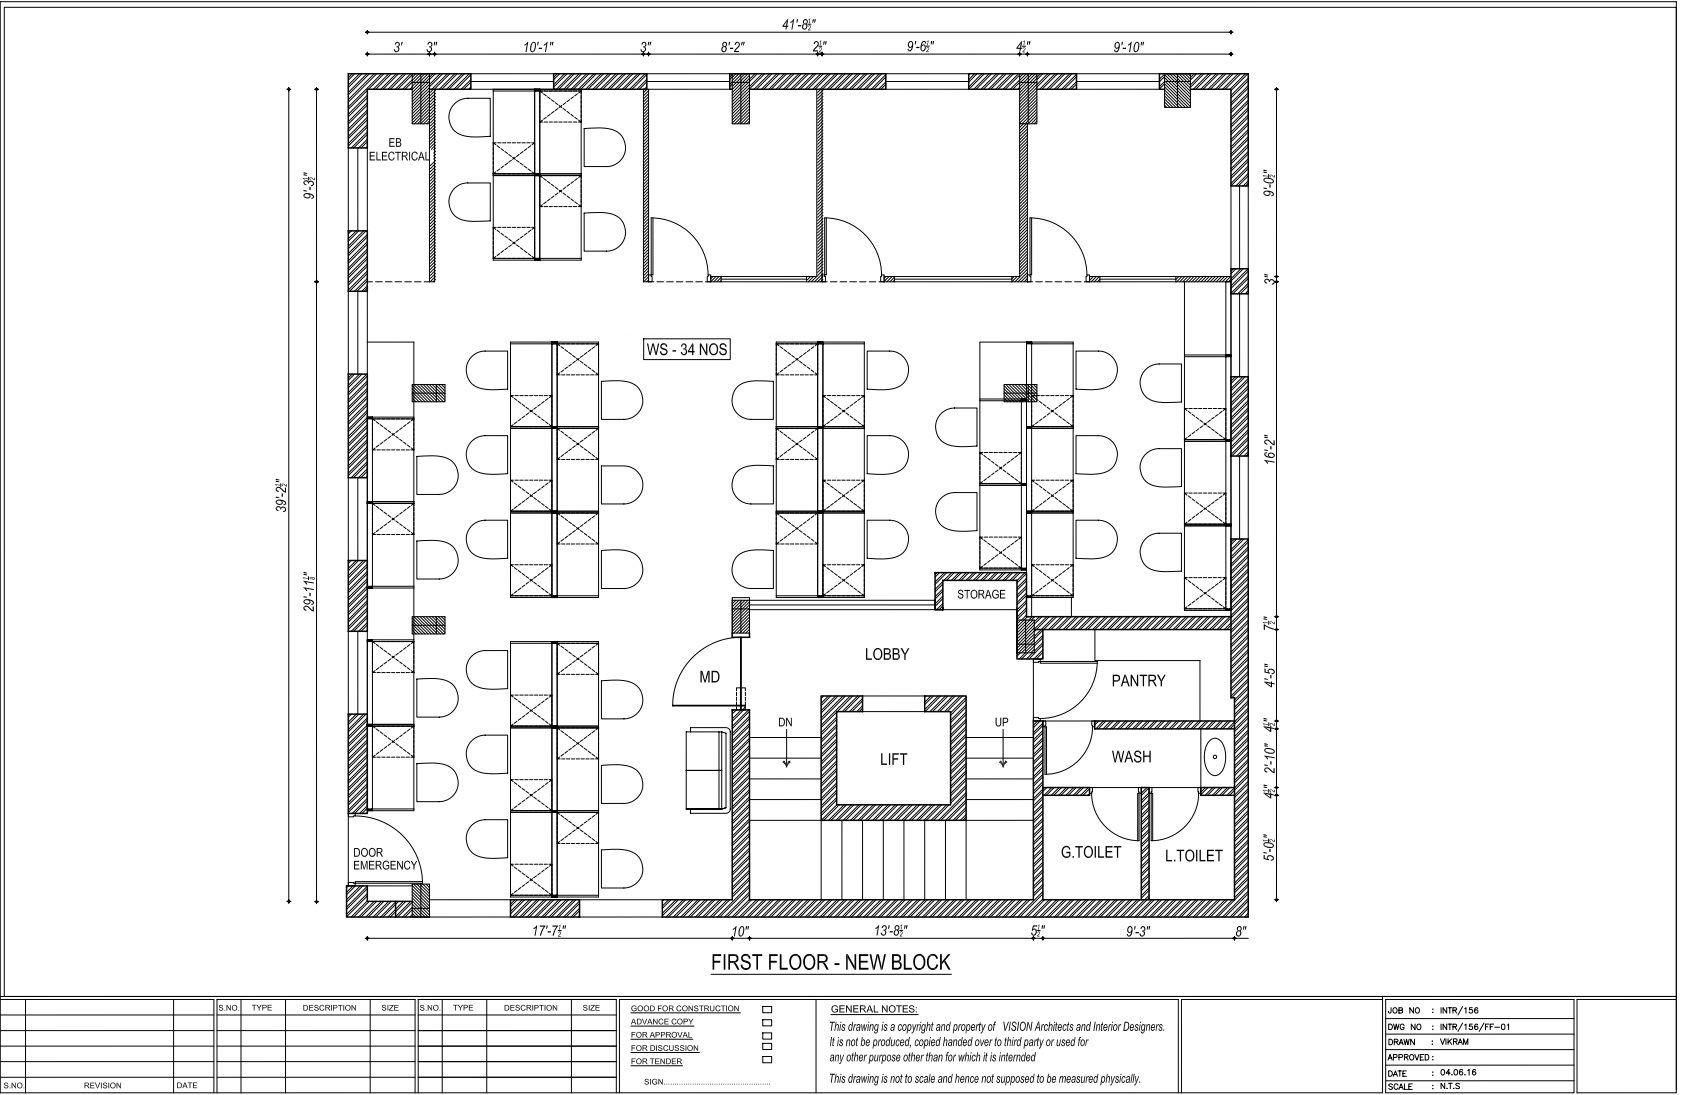 FIRST FLOOR PLAN - GUINDY